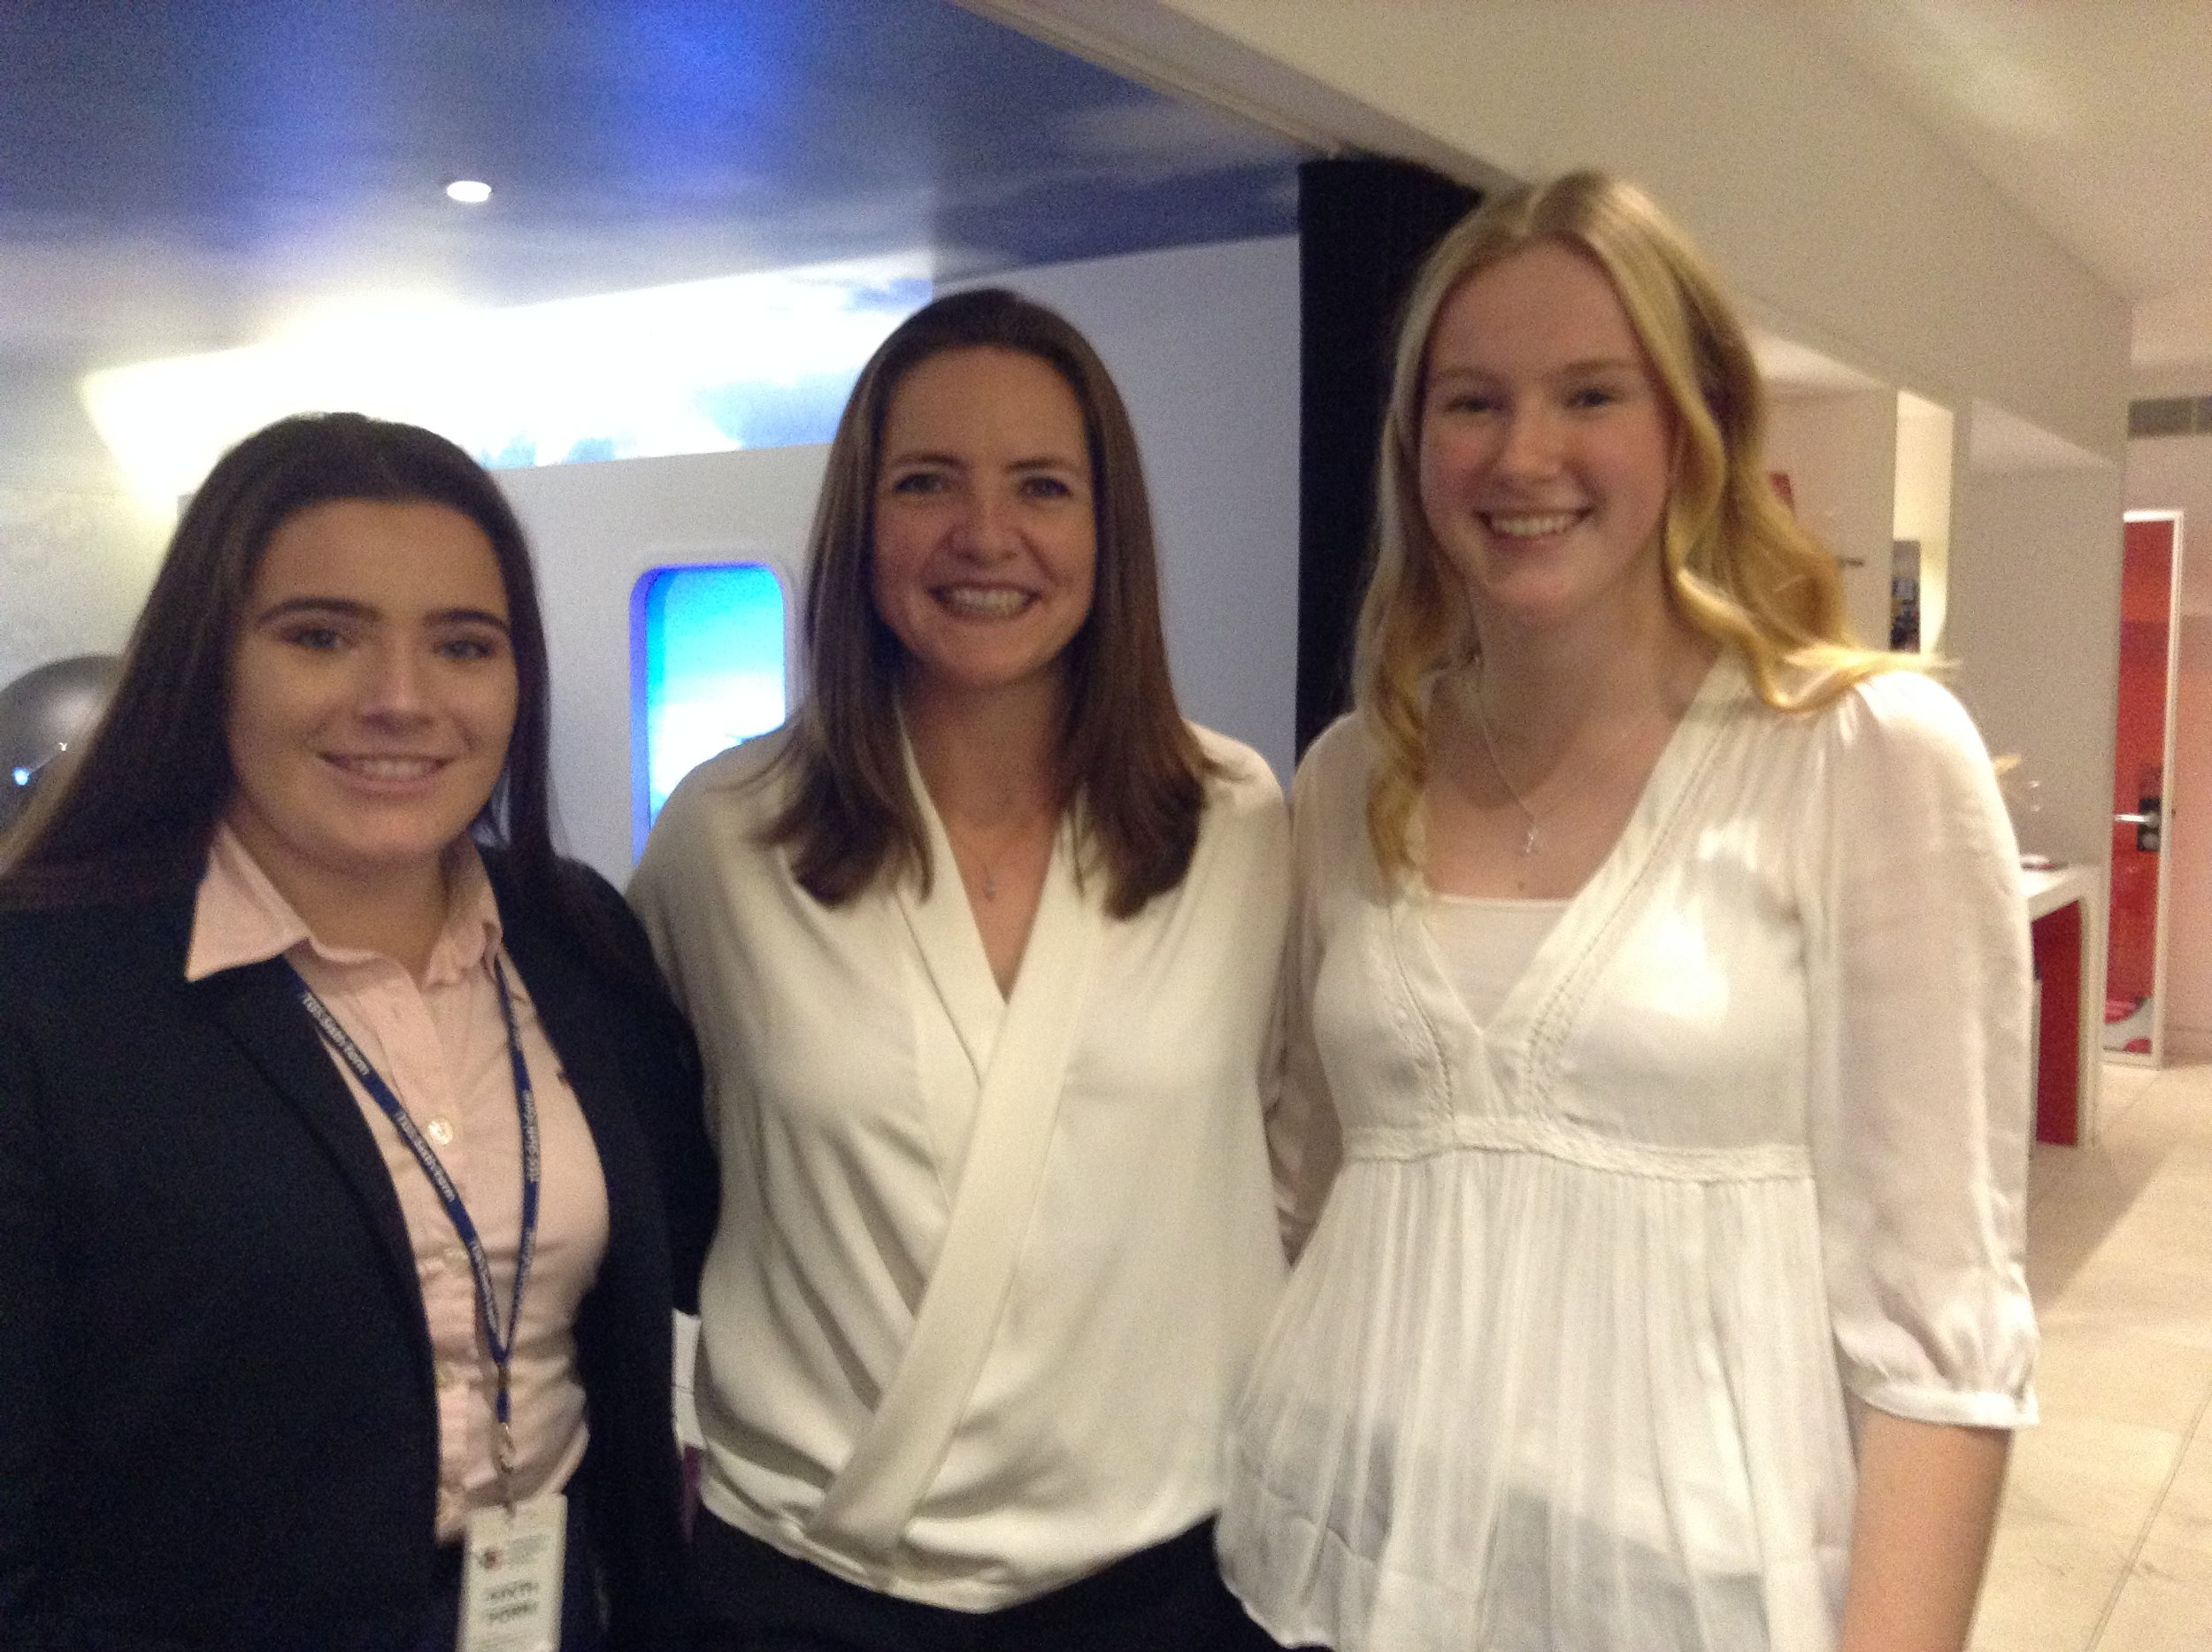 TGS Students with Olympian Goldie Sayers at the Campaign launch event this week